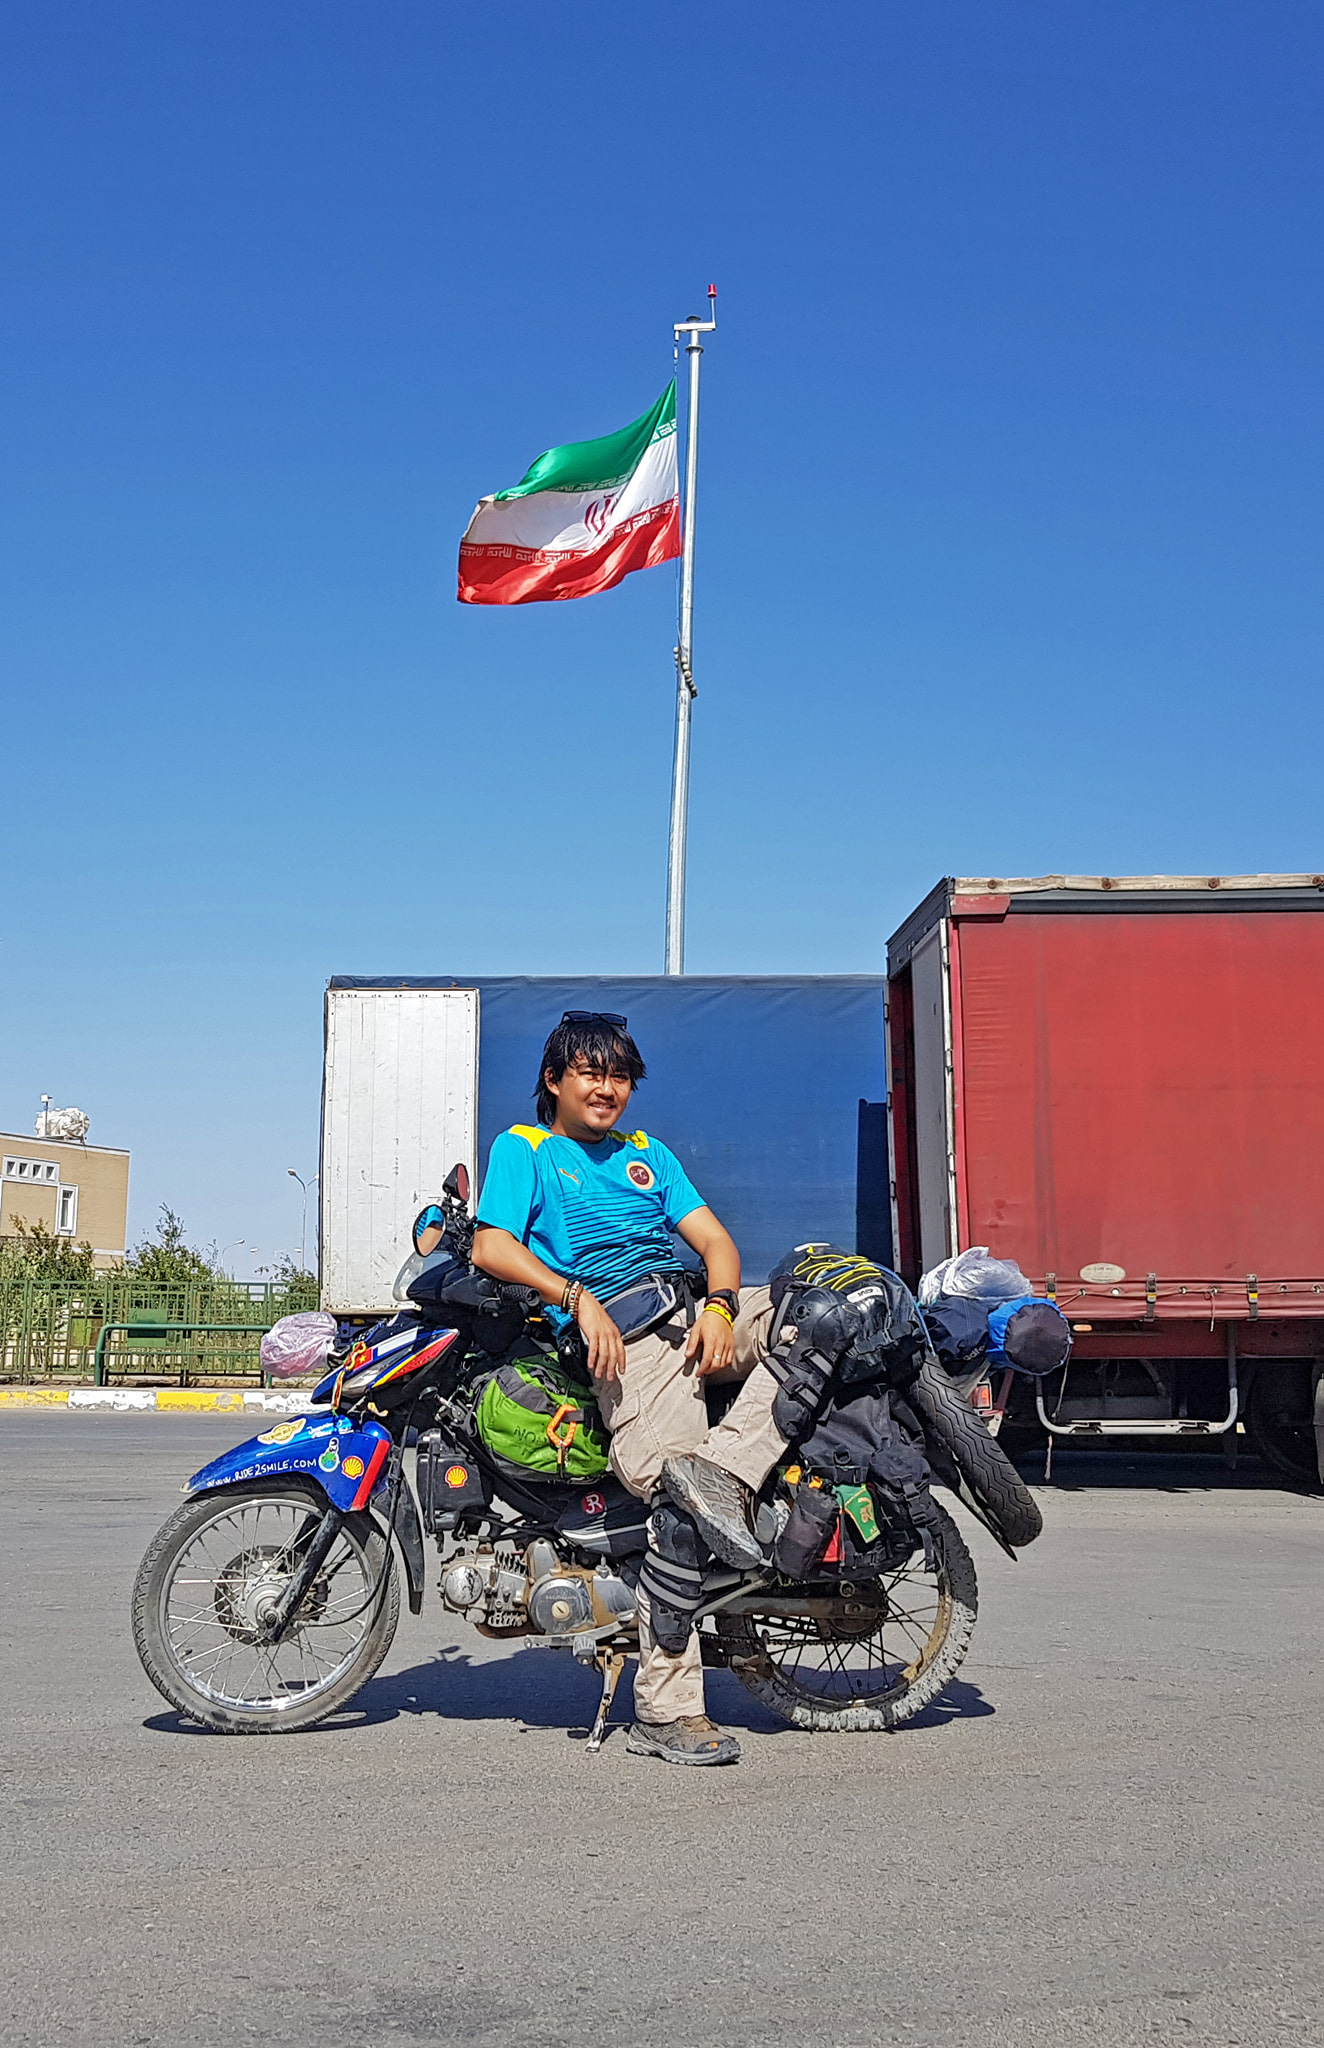 Vietnamese globetrotter Tran Dang Dang Khoa poses for a photo with his motorbike in Iran in a photo posted to his verified Facebook account.